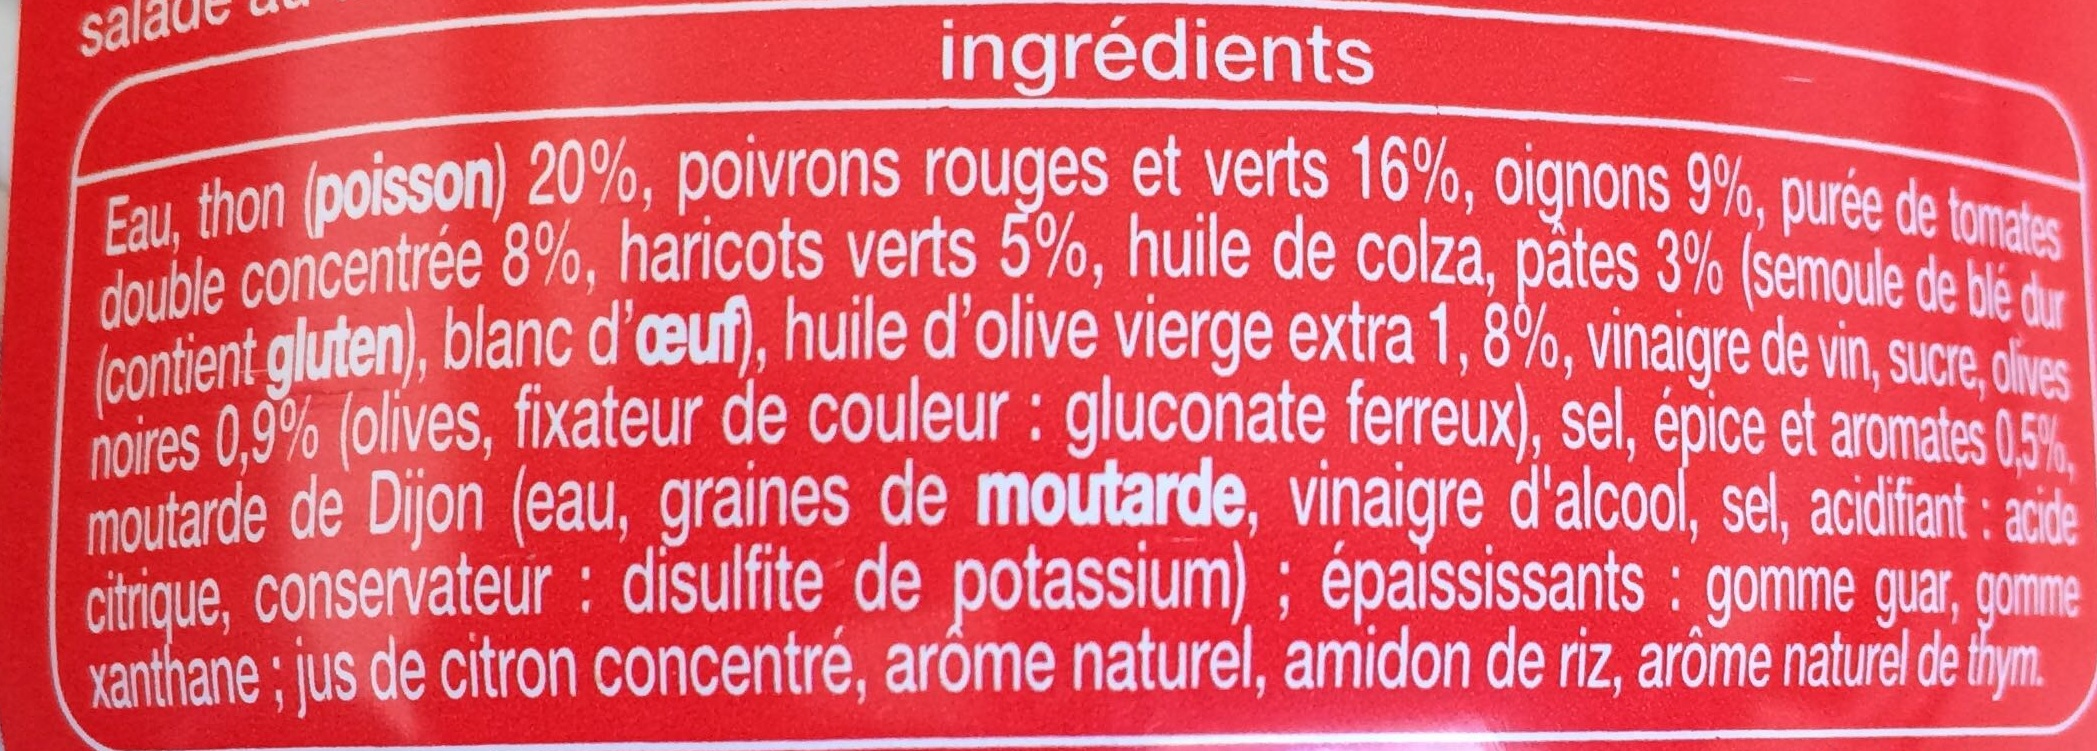 Salade catalane au thon - Ingredients